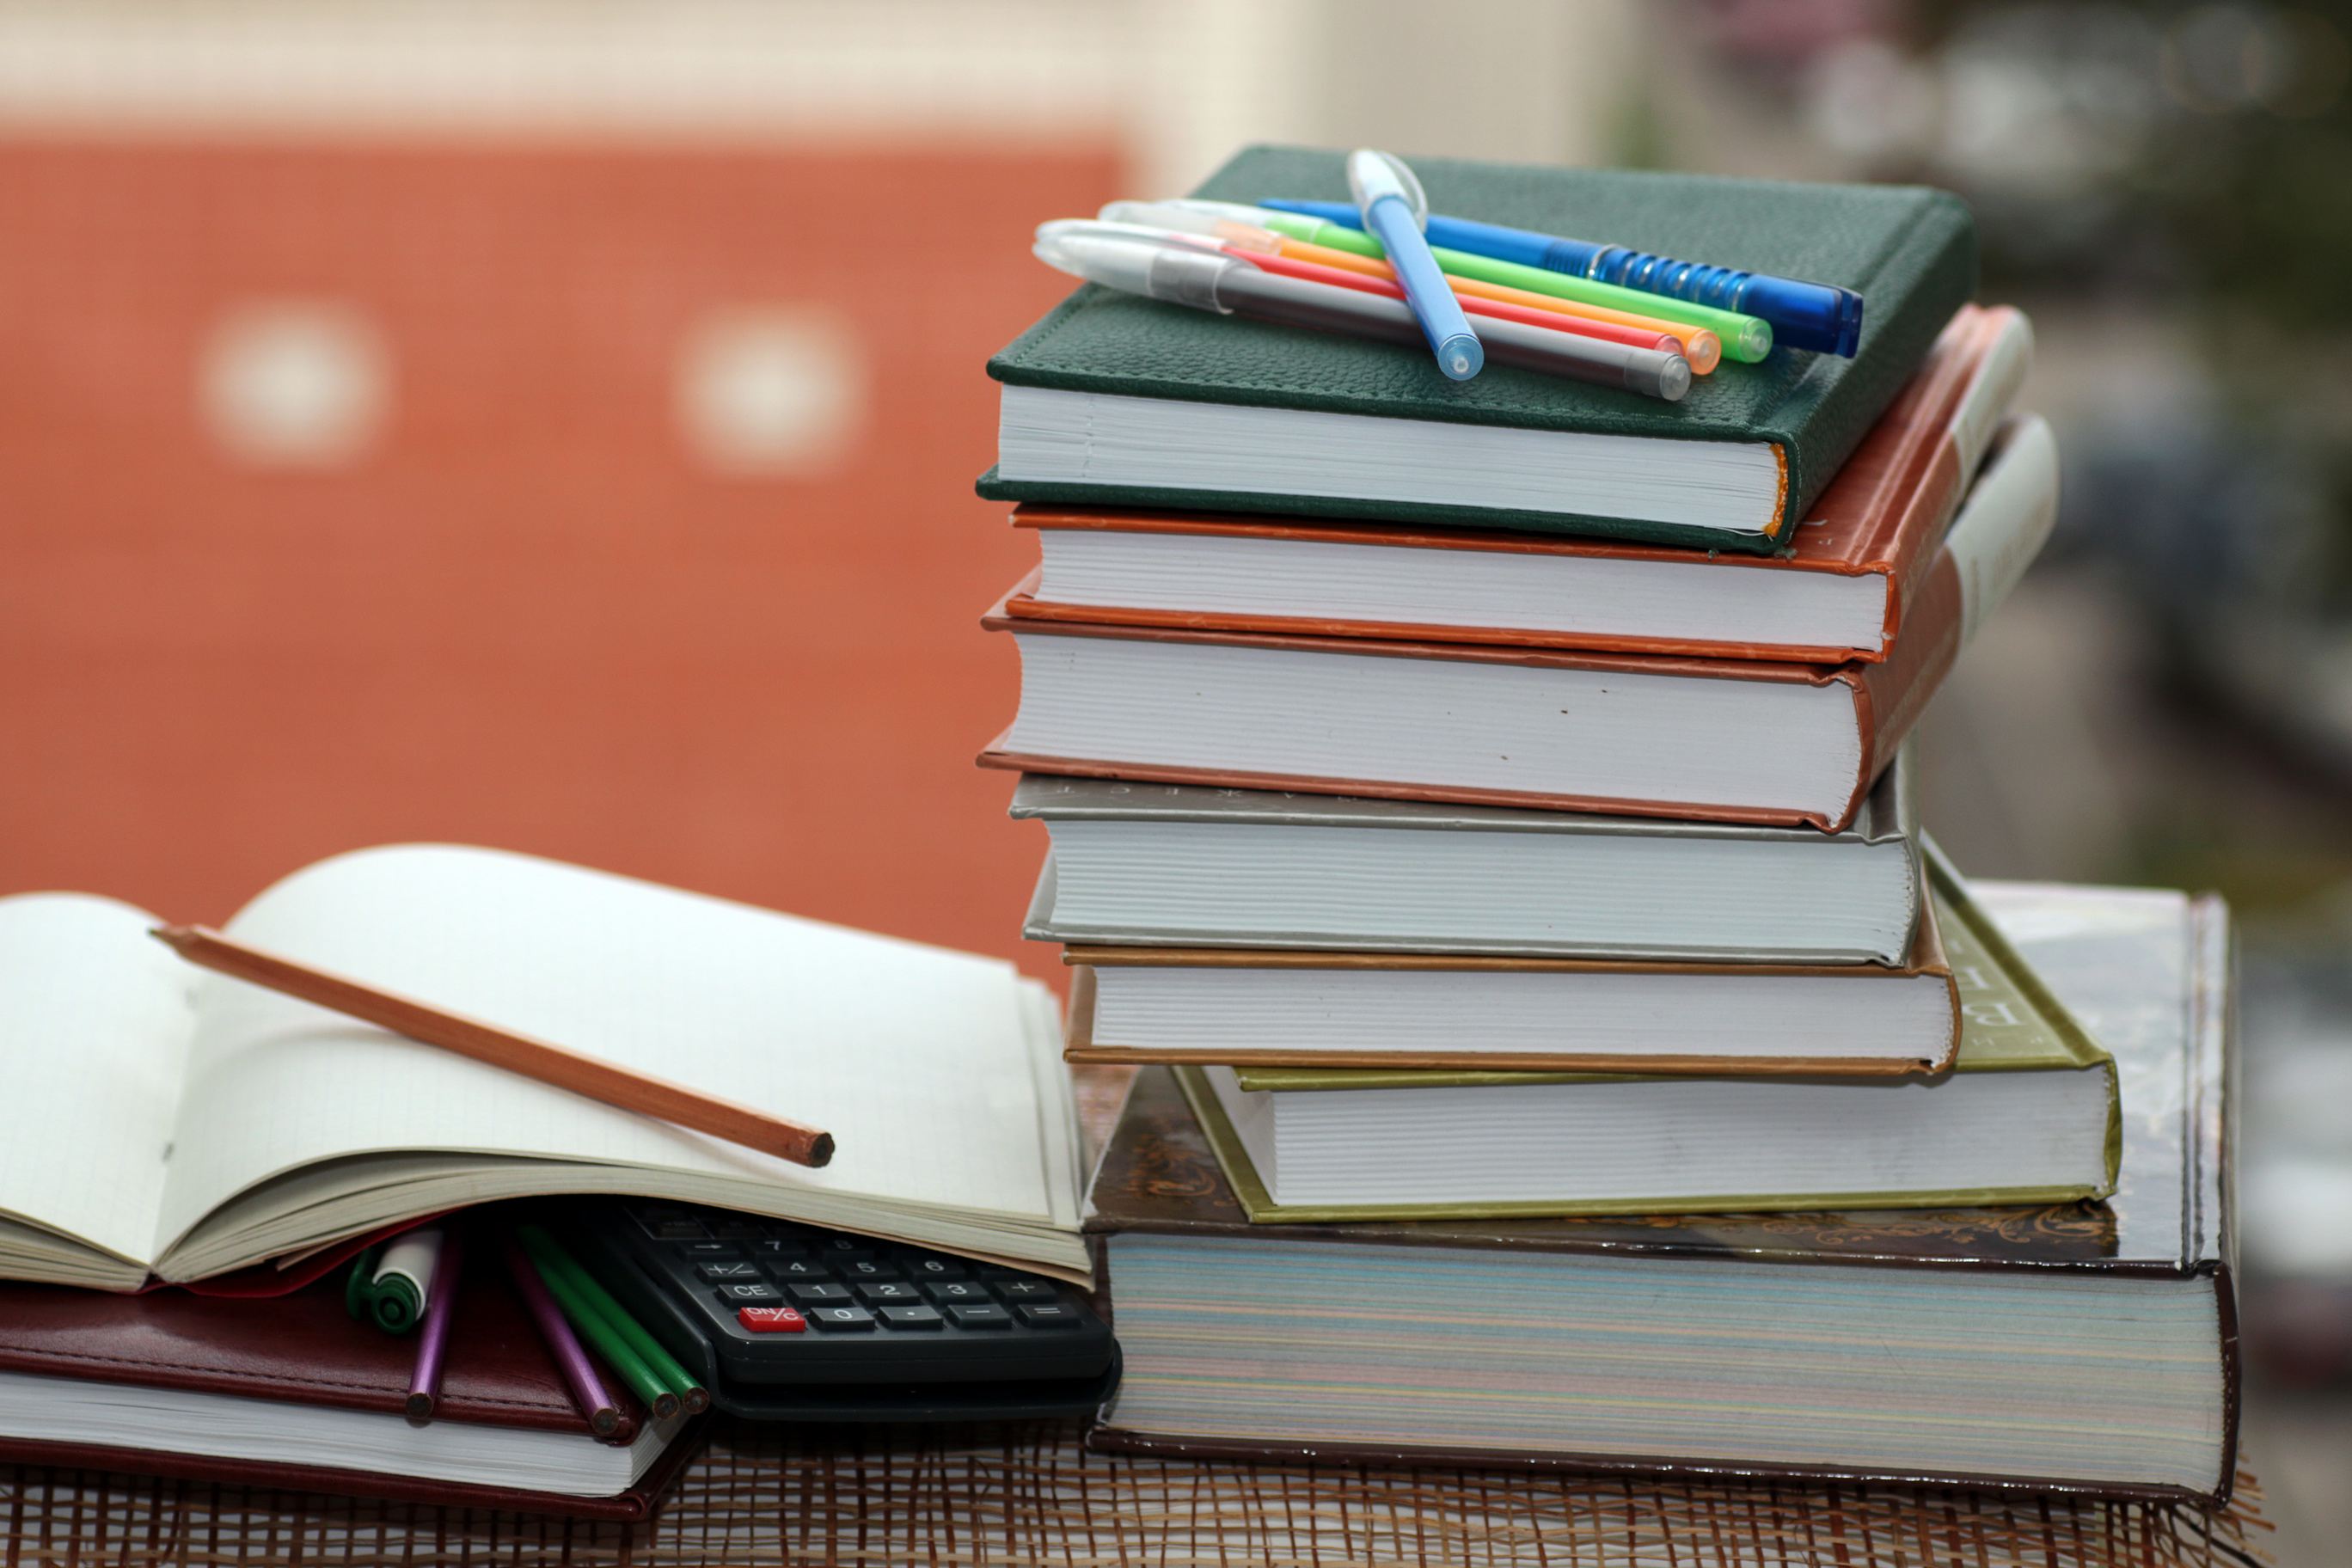 Several books stacked up with pens layed on top of stack. One book open with pencil laying across the page.